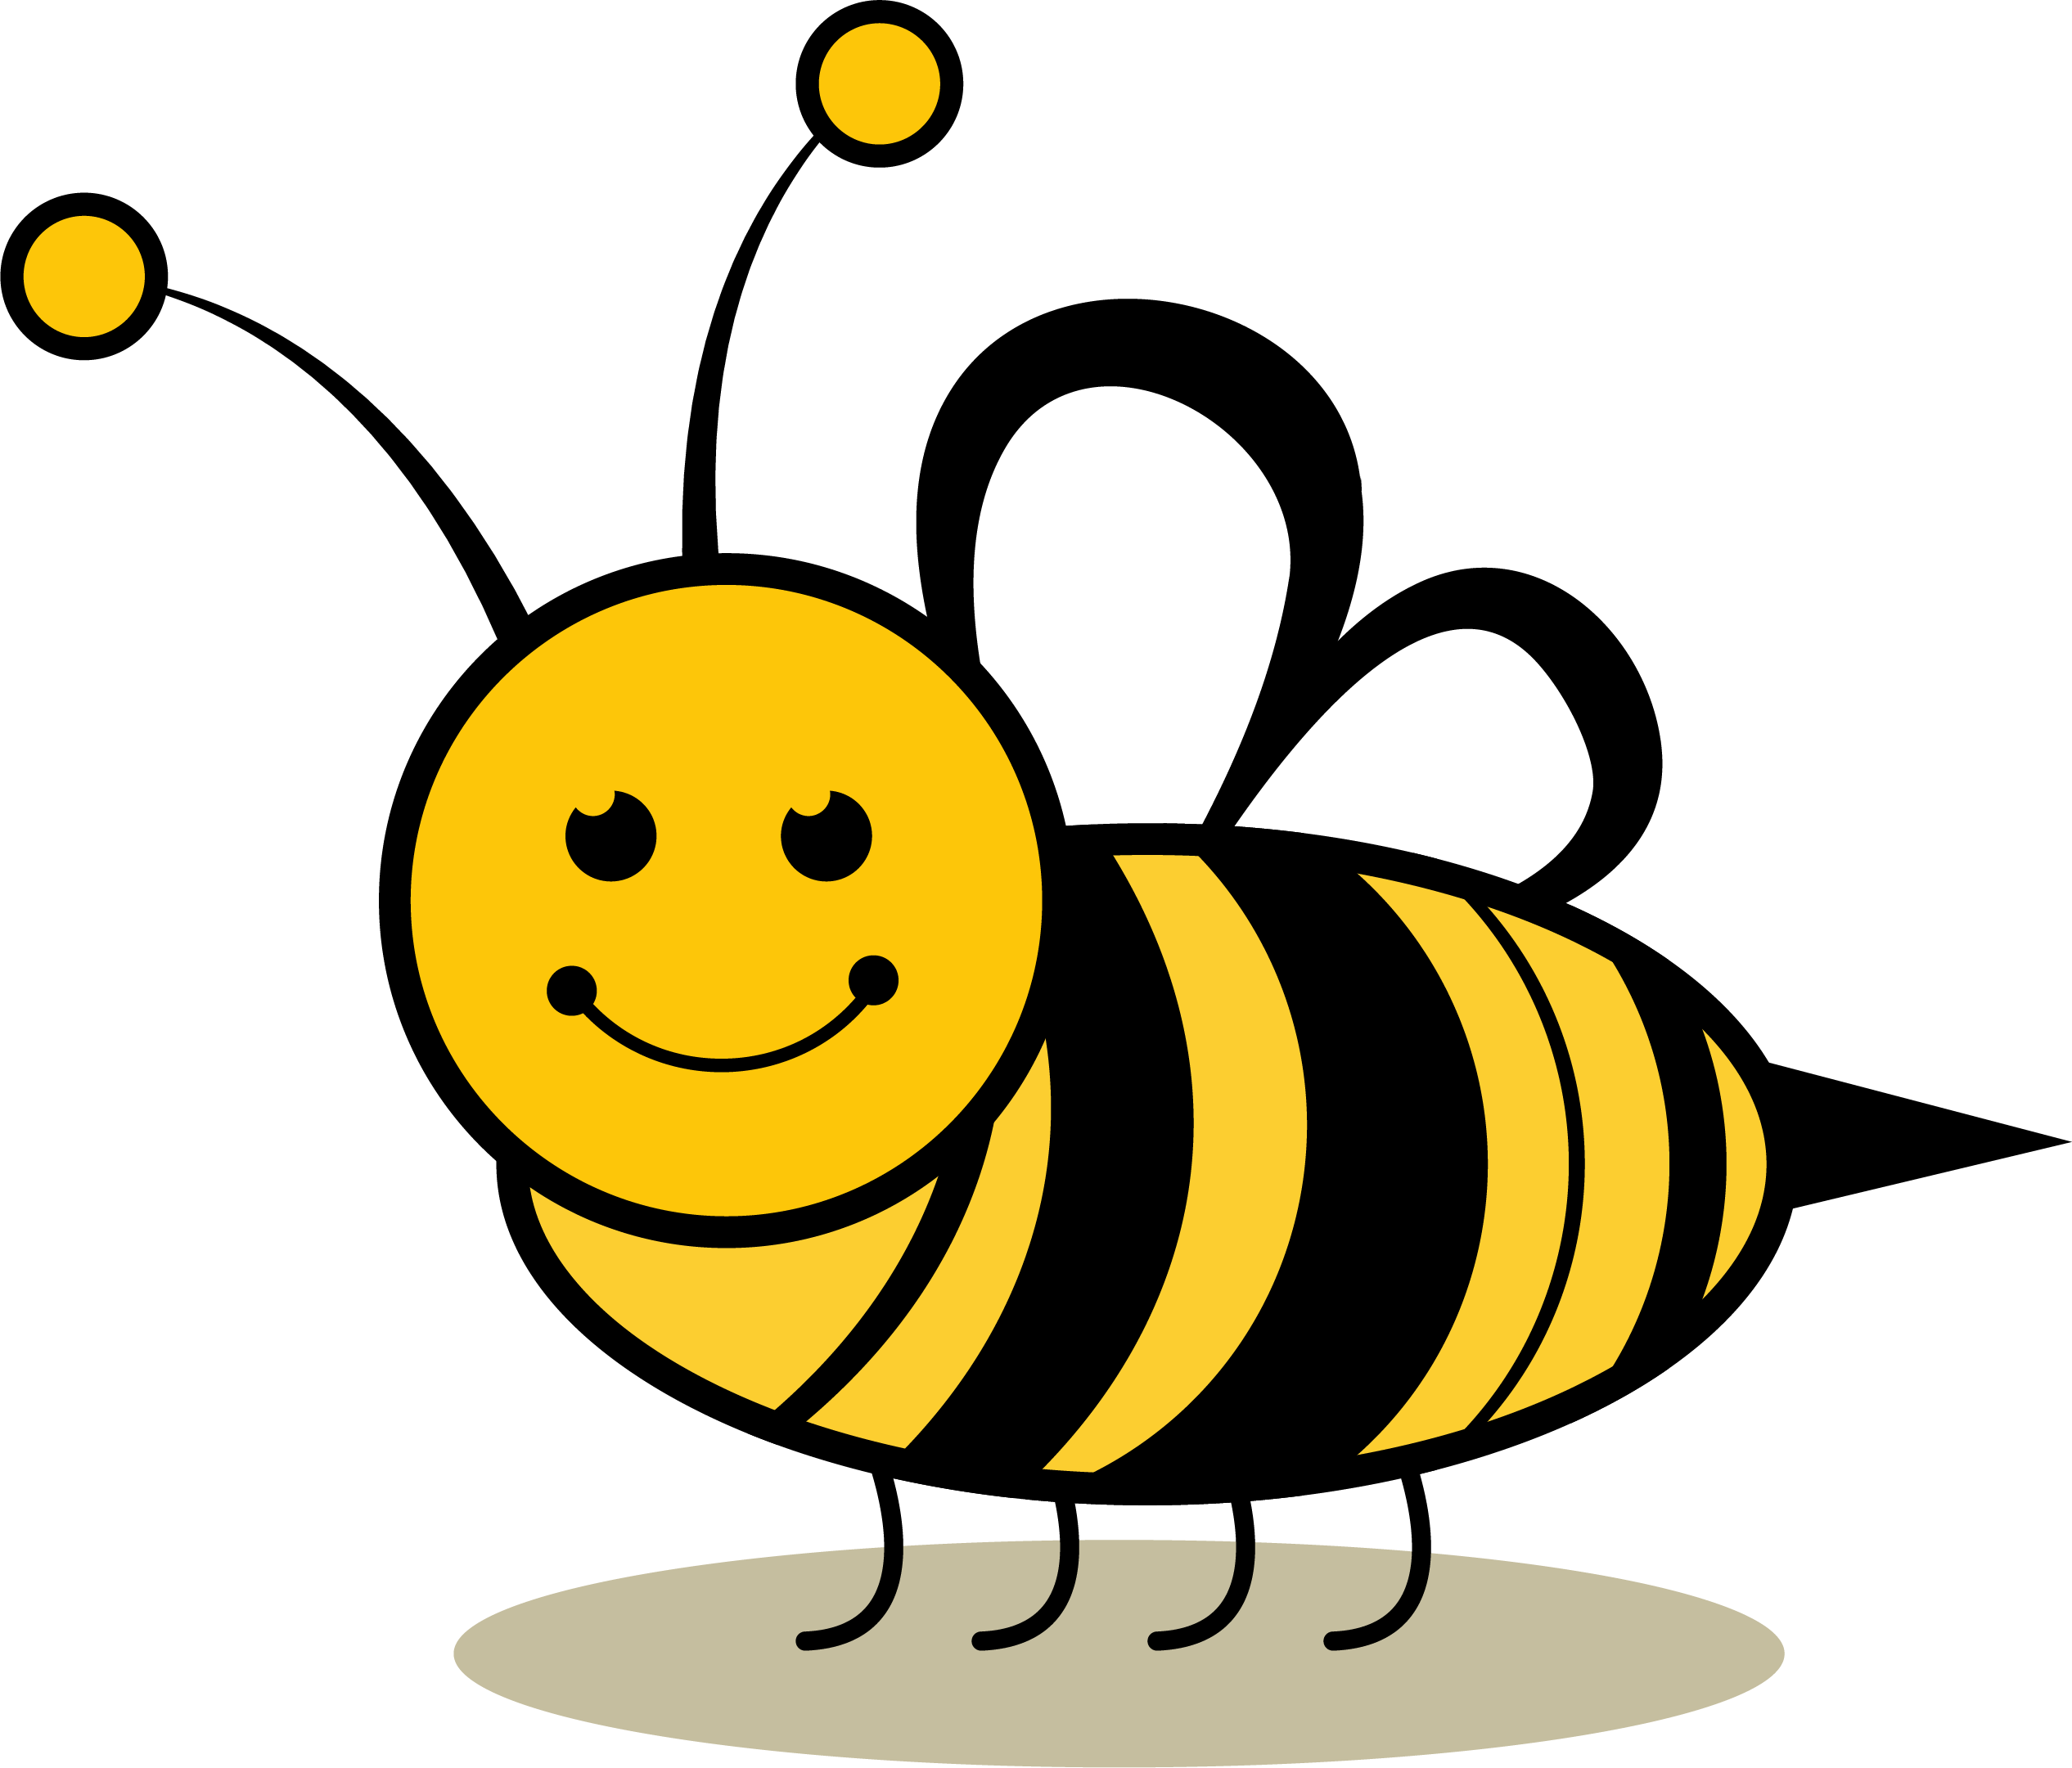 Insect clipart honey bee. Clip art smile transprent